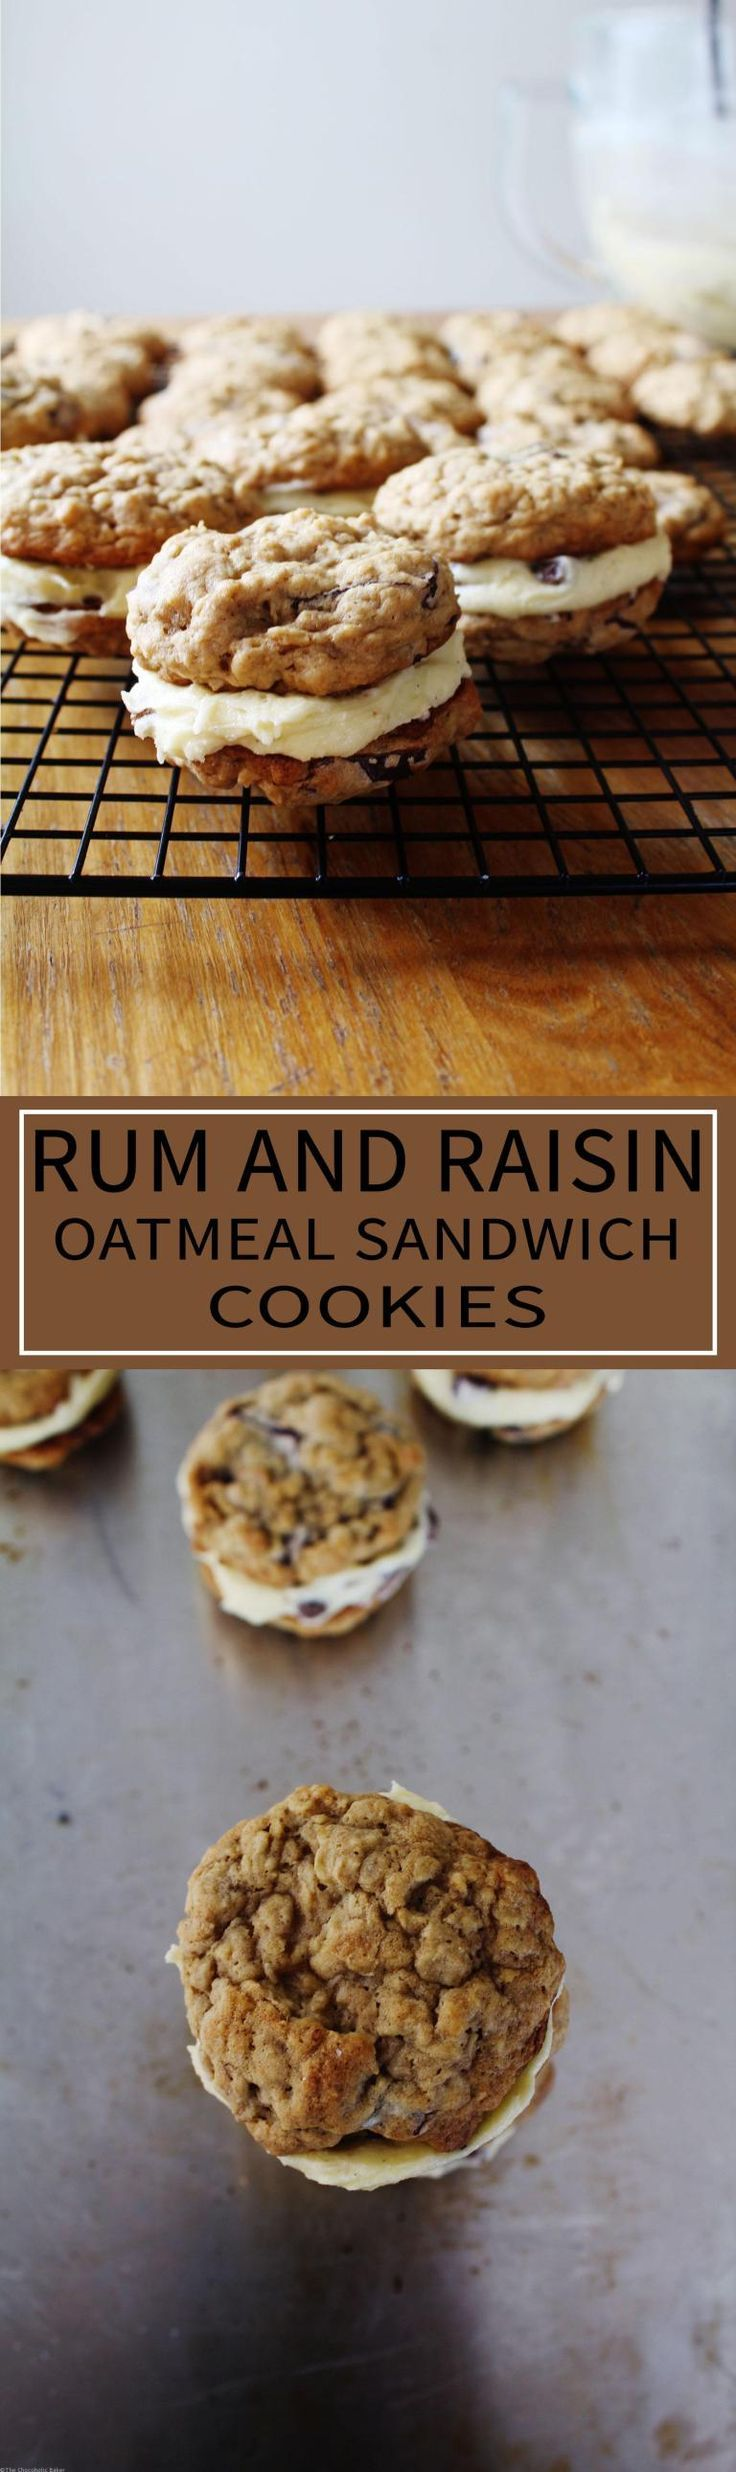 Rum and Raisin Oatmeal Sandwich Cookies - A mix and match between the ...